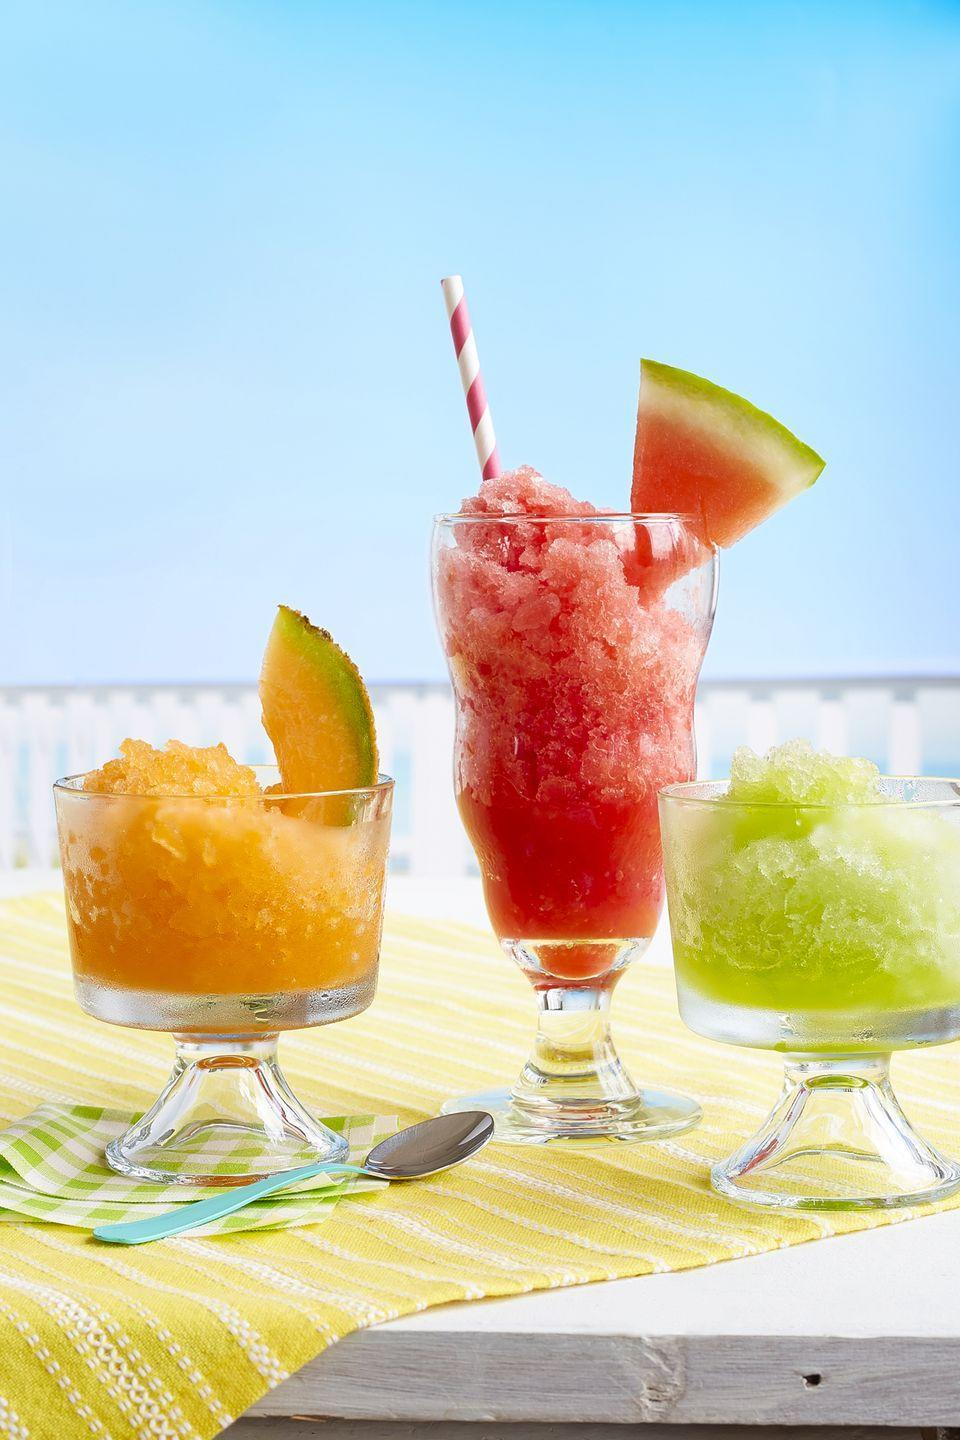 "<p>Whatever your flavor preference (Watermelon-Lime, Honeydew-Ginger-Mint, or Cantaloupe-Basil) these fruit slushies will keep you happy. </p><p><strong><em><a href=""https://www.womansday.com/food-recipes/food-drinks/recipes/a59422/summer-melon-slushies-recipe/"" rel=""nofollow noopener"" target=""_blank"" data-ylk=""slk:Get the recipe for Summer Melon Slushies"" class=""link rapid-noclick-resp"">Get the recipe for Summer Melon Slushies</a>.</em></strong></p><p><strong>RELATED: </strong><a href=""https://www.womansday.com/food-recipes/food-drinks/g2196/picnic-food-ideas/"" rel=""nofollow noopener"" target=""_blank"" data-ylk=""slk:Easy Picnic Recipe Ideas Perfect for Summer"" class=""link rapid-noclick-resp"">Easy Picnic Recipe Ideas Perfect for Summer</a></p>"